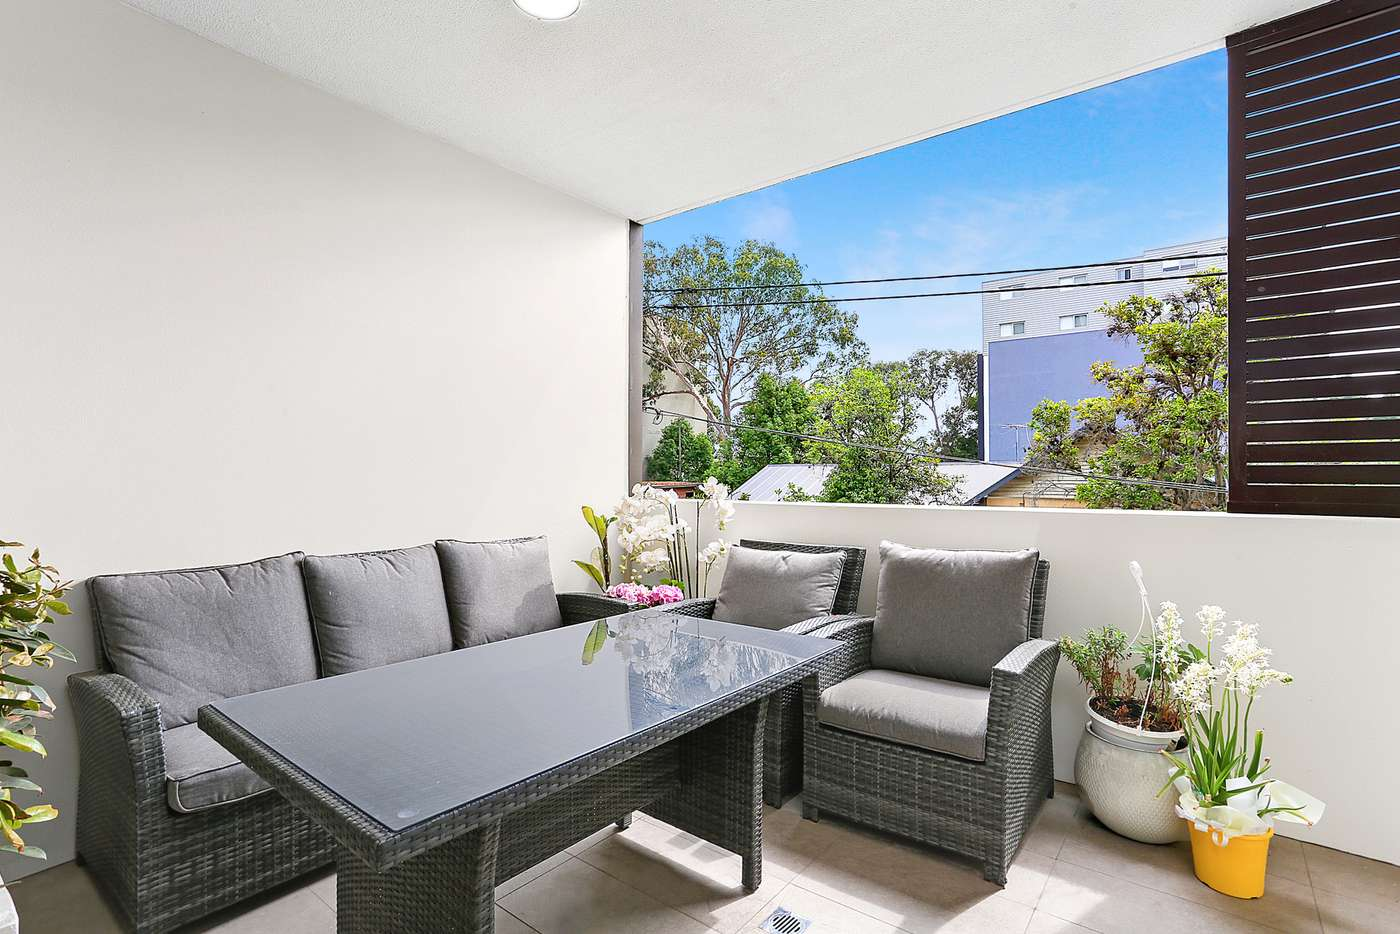 Main view of Homely apartment listing, 110/85 Park Road, Homebush NSW 2140